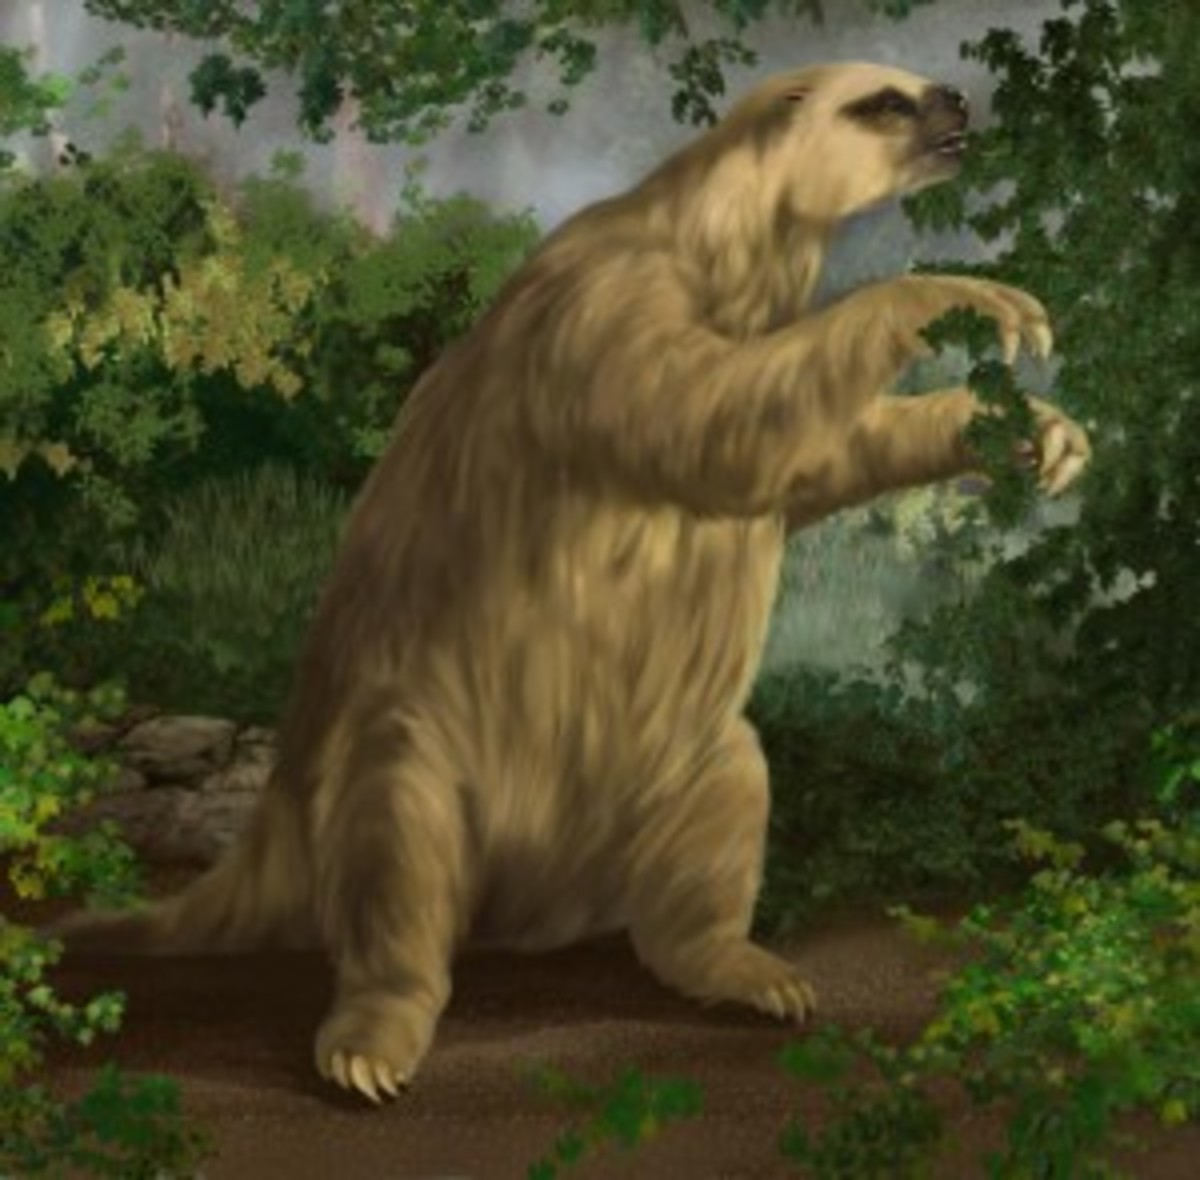 Should we de-extinct animals? How about cloning a Giant Ground Sloth?